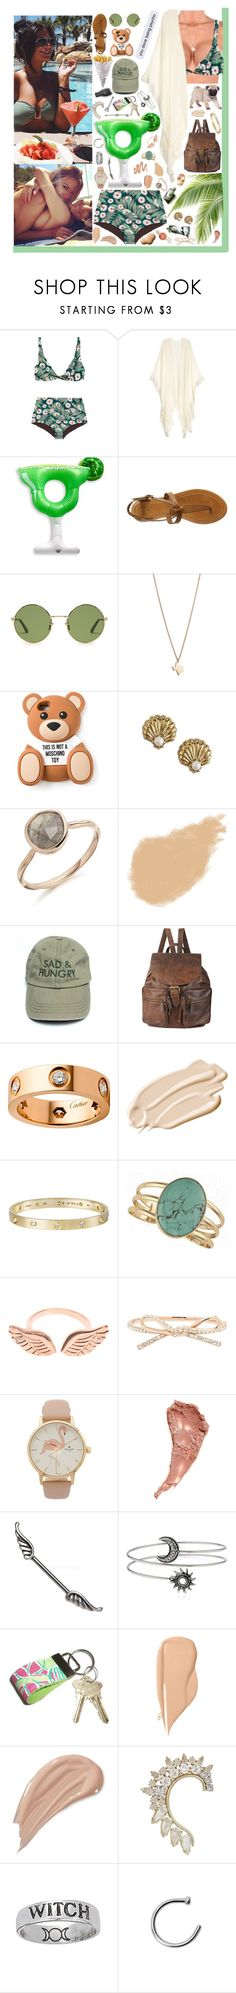 """""""The ocean is my only medication.❤️"""" by loretta-mccoy ❤ liked on Polyvore featuring Mara Hoffman, Big Mouth, Frye, Yves Saint Laurent, Minor Obsessions, Rachael Ray, Moschino, Juicy Couture, Armani Beauty and Forever 21"""